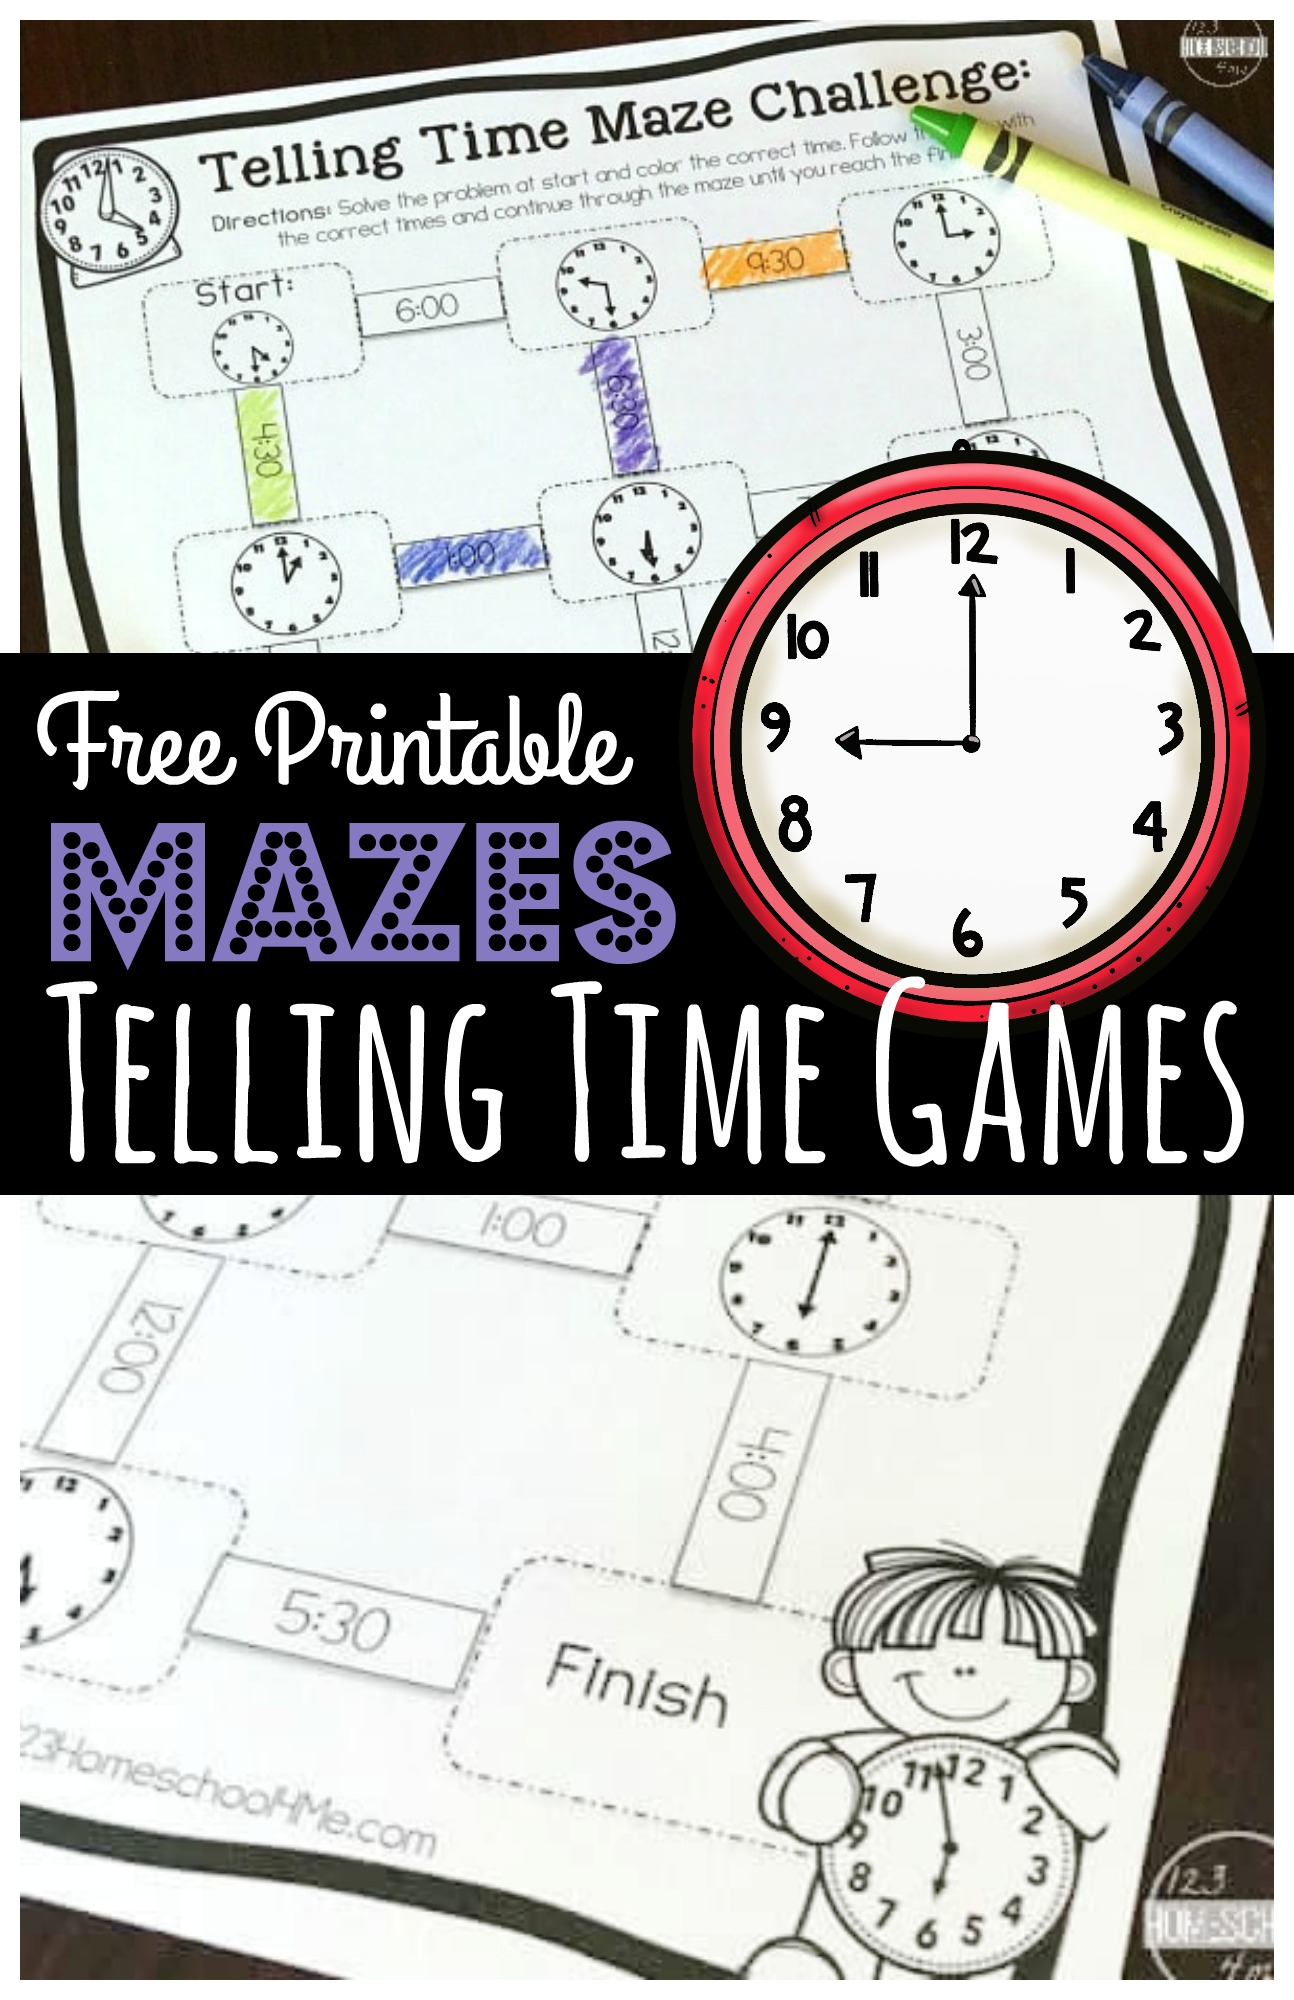 hight resolution of FREE Maze Challenge Telling Time Games Printable